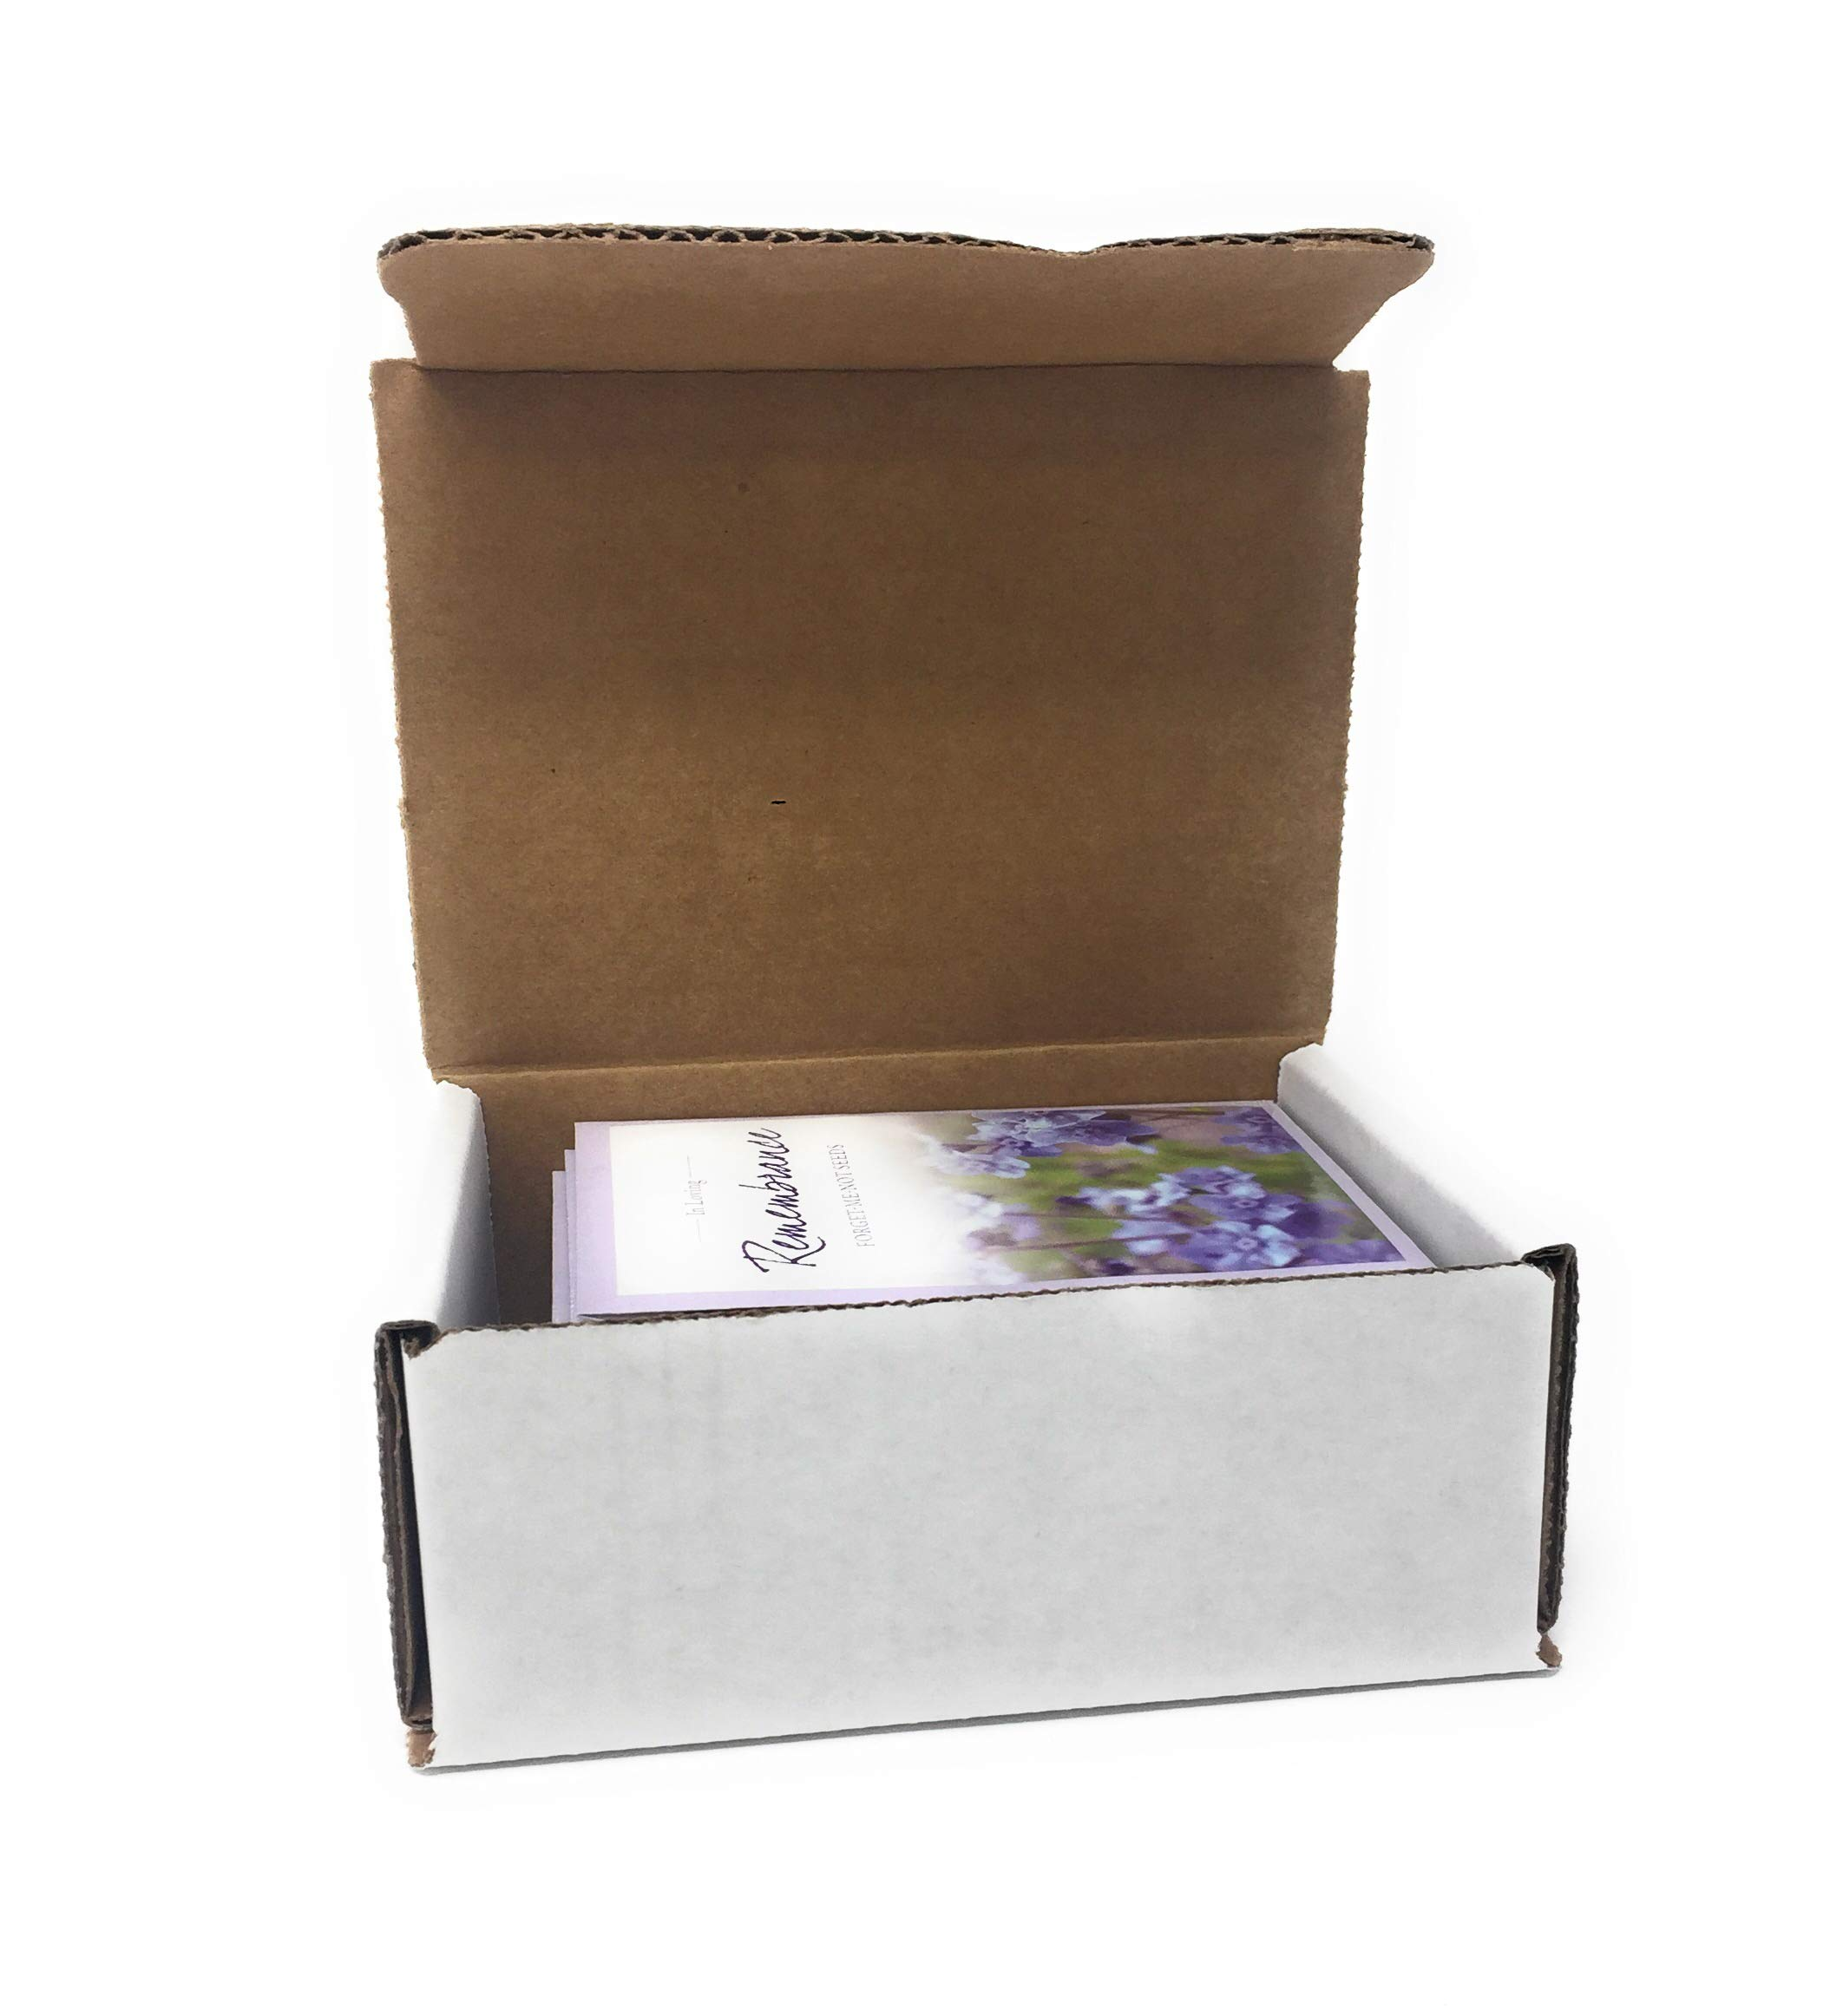 in Loving Remembrance - Individual Forget Me Not Flower Seed Packet Favors - Ready to Give - Pack of 20 by American Meadows (Image #3)